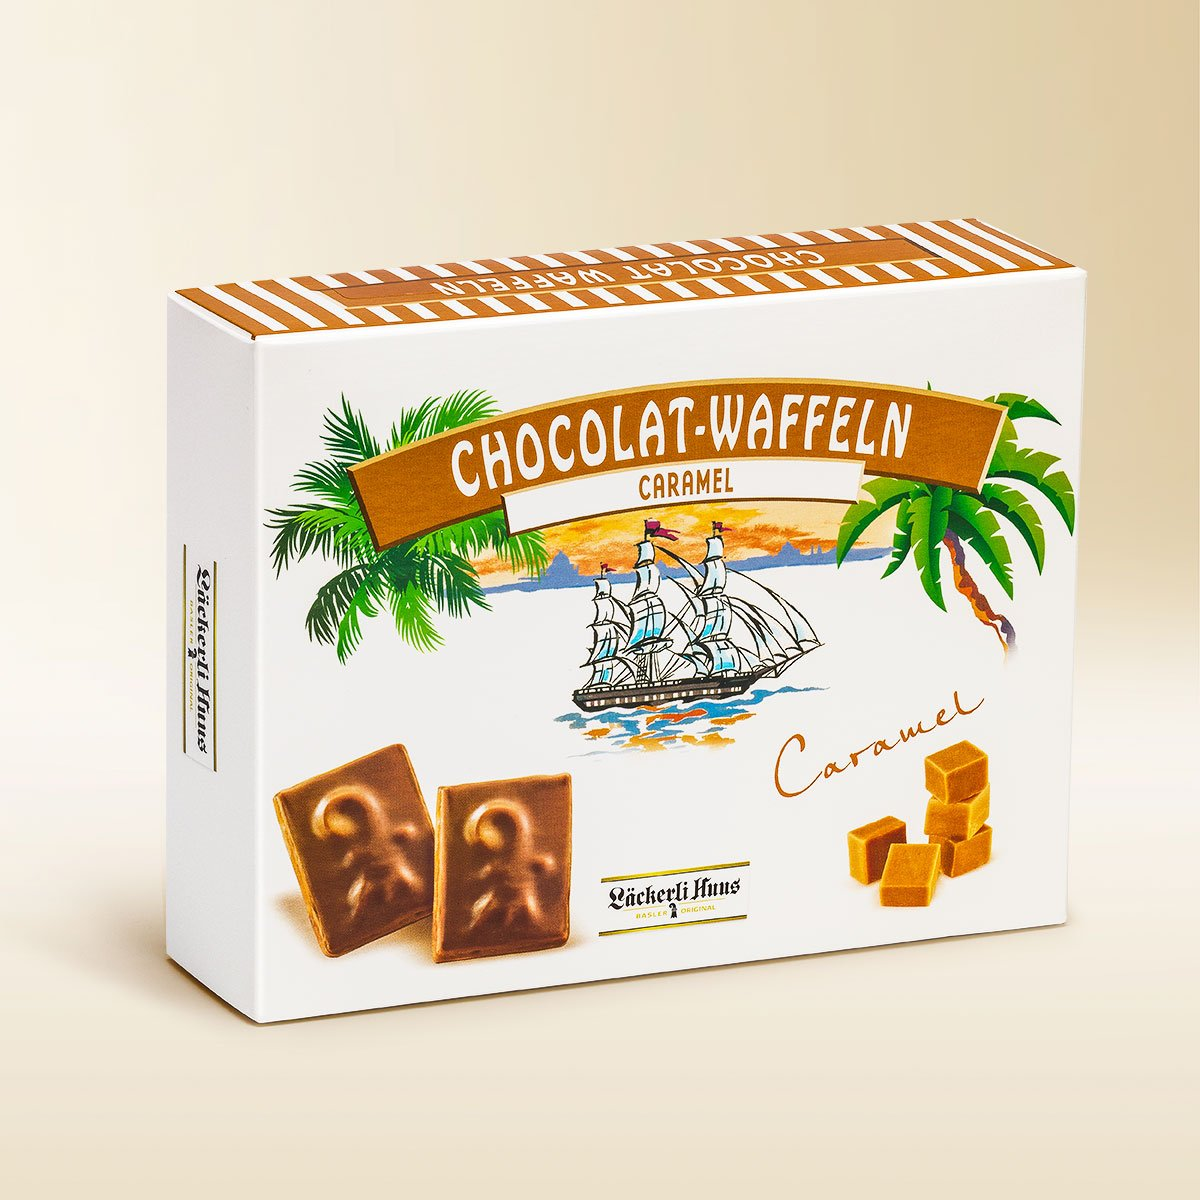 Chocolate wafers caramel 195g